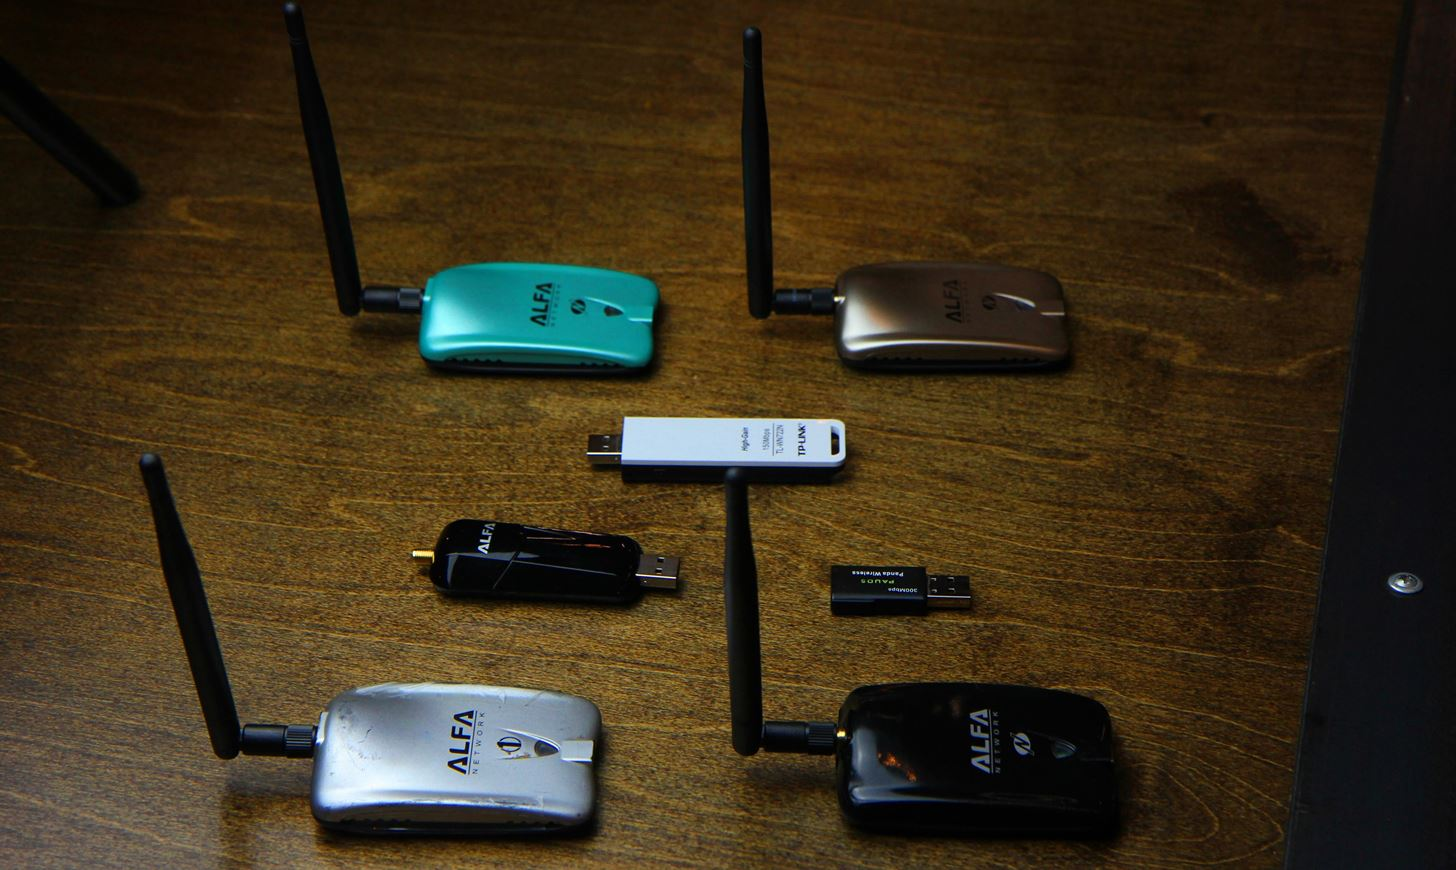 Buy the Best Wireless Network Adapter for Wi-Fi Hacking in 2018